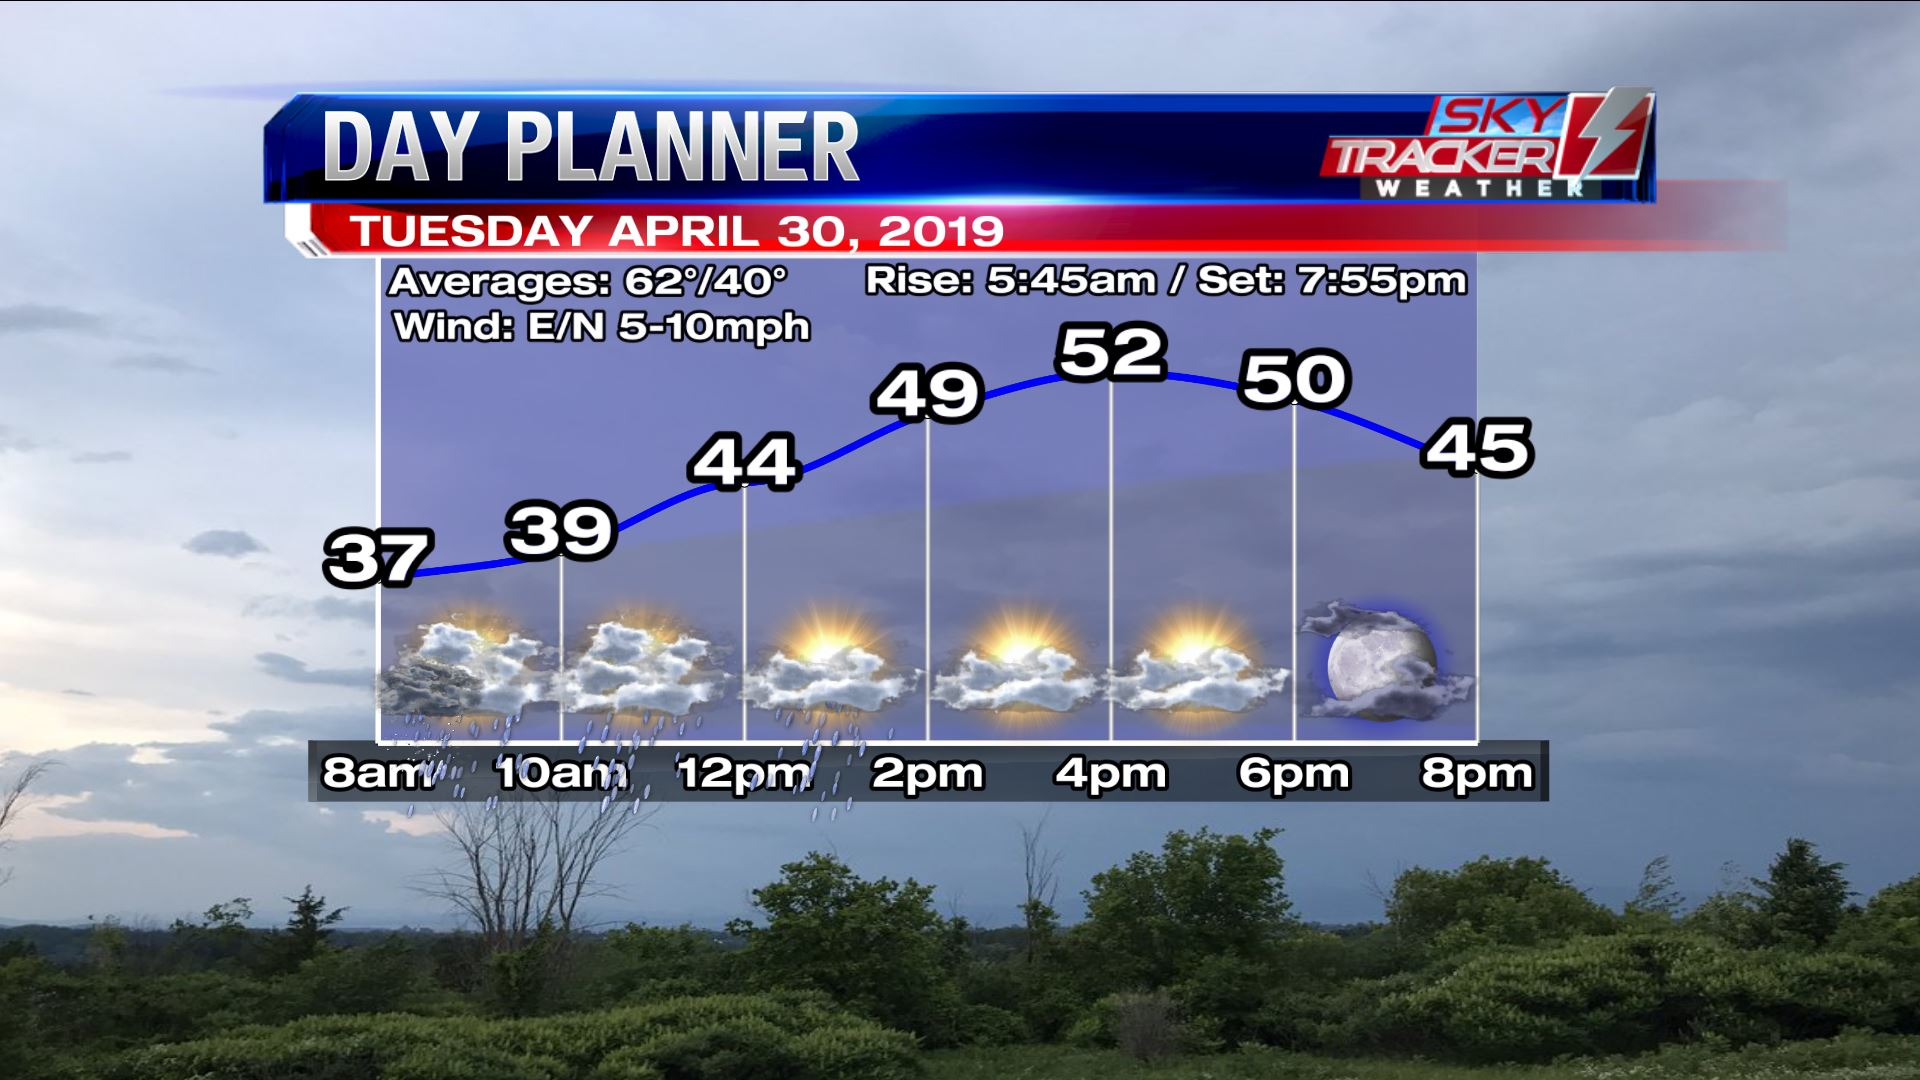 Planner for Tuesday April 30 2019